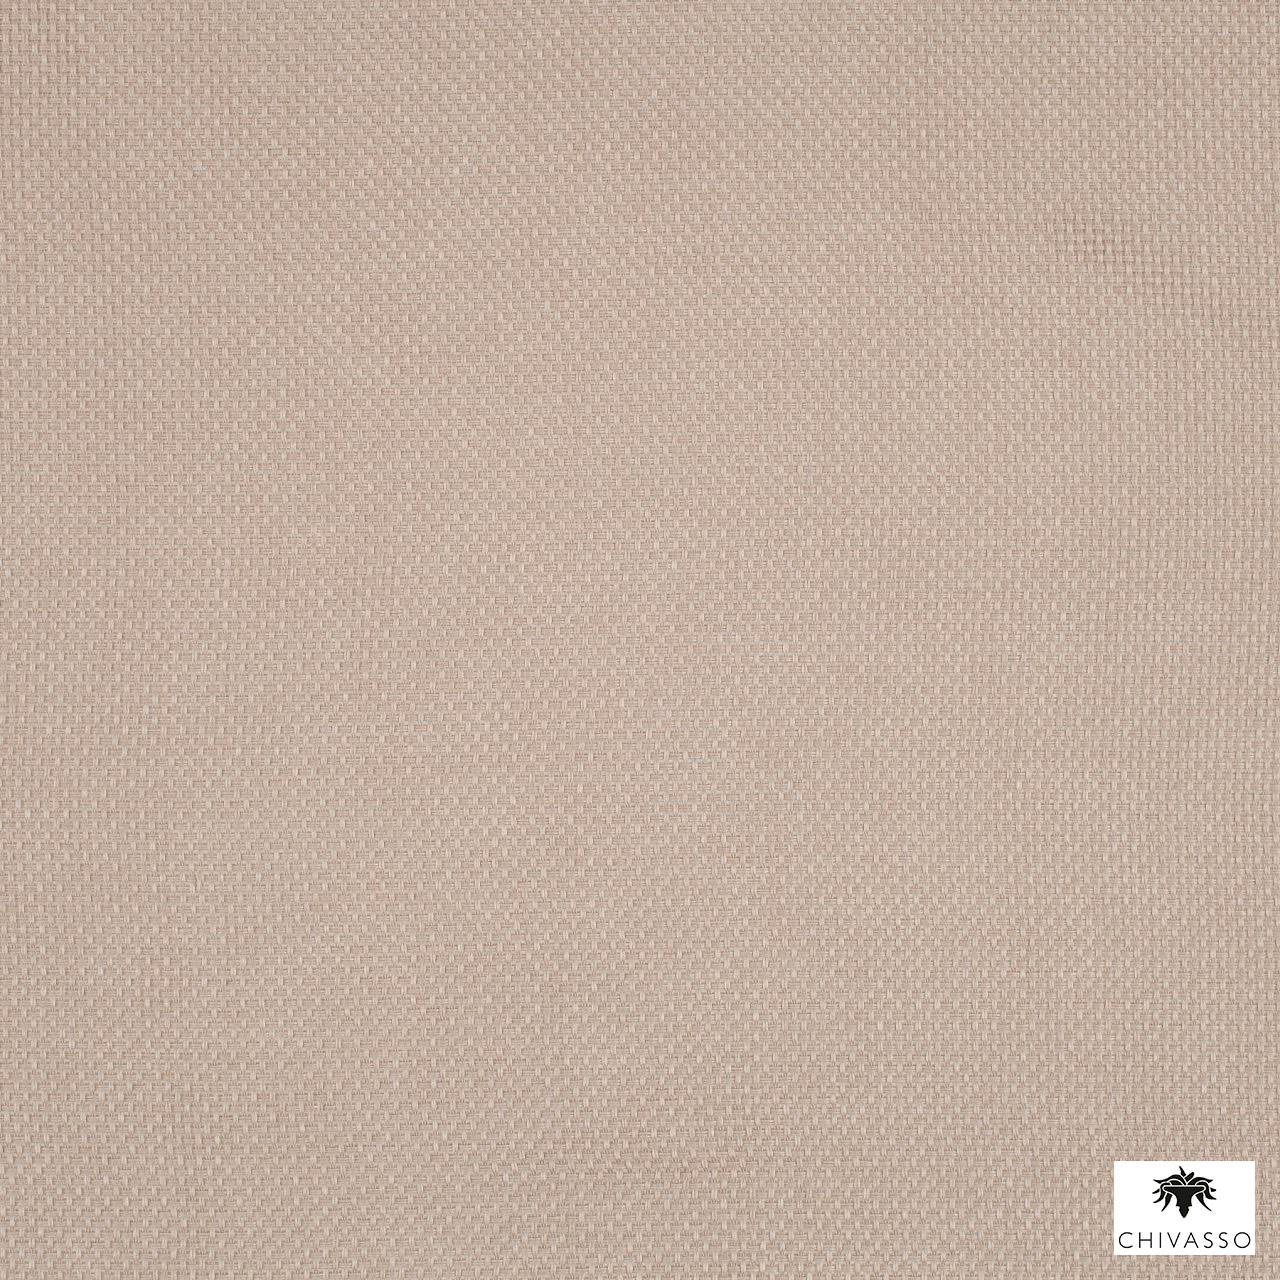 Chivasso - Twinkle - Ch2740-073  | Curtain Fabric - Beige, Plain, Synthetic, Domestic Use, Railroaded, Wide Width